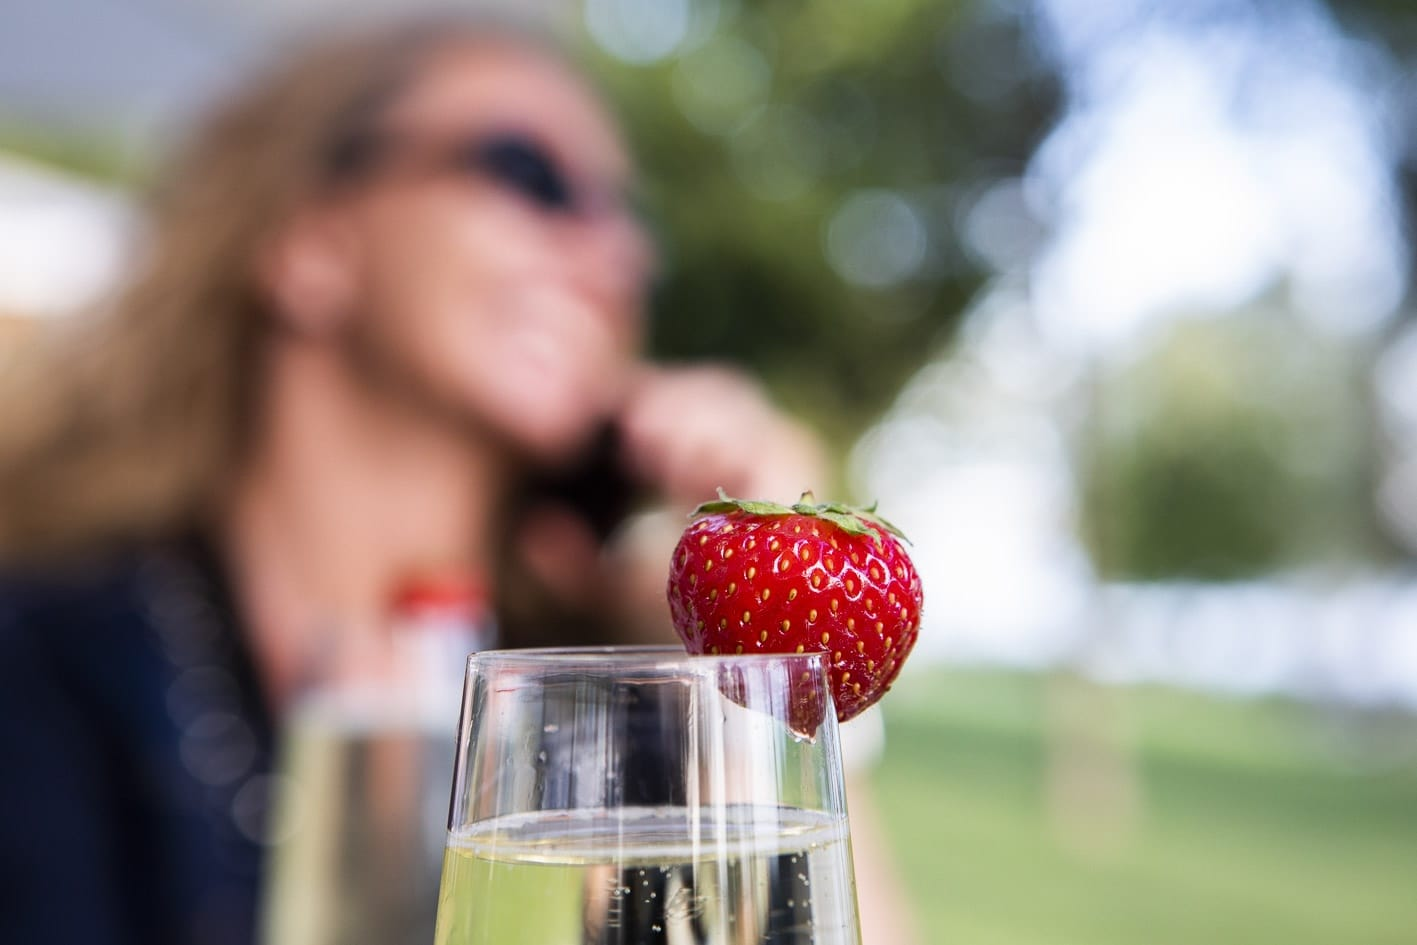 smiling woman on telephone out of focus in background, in front glass of wine with strawberry